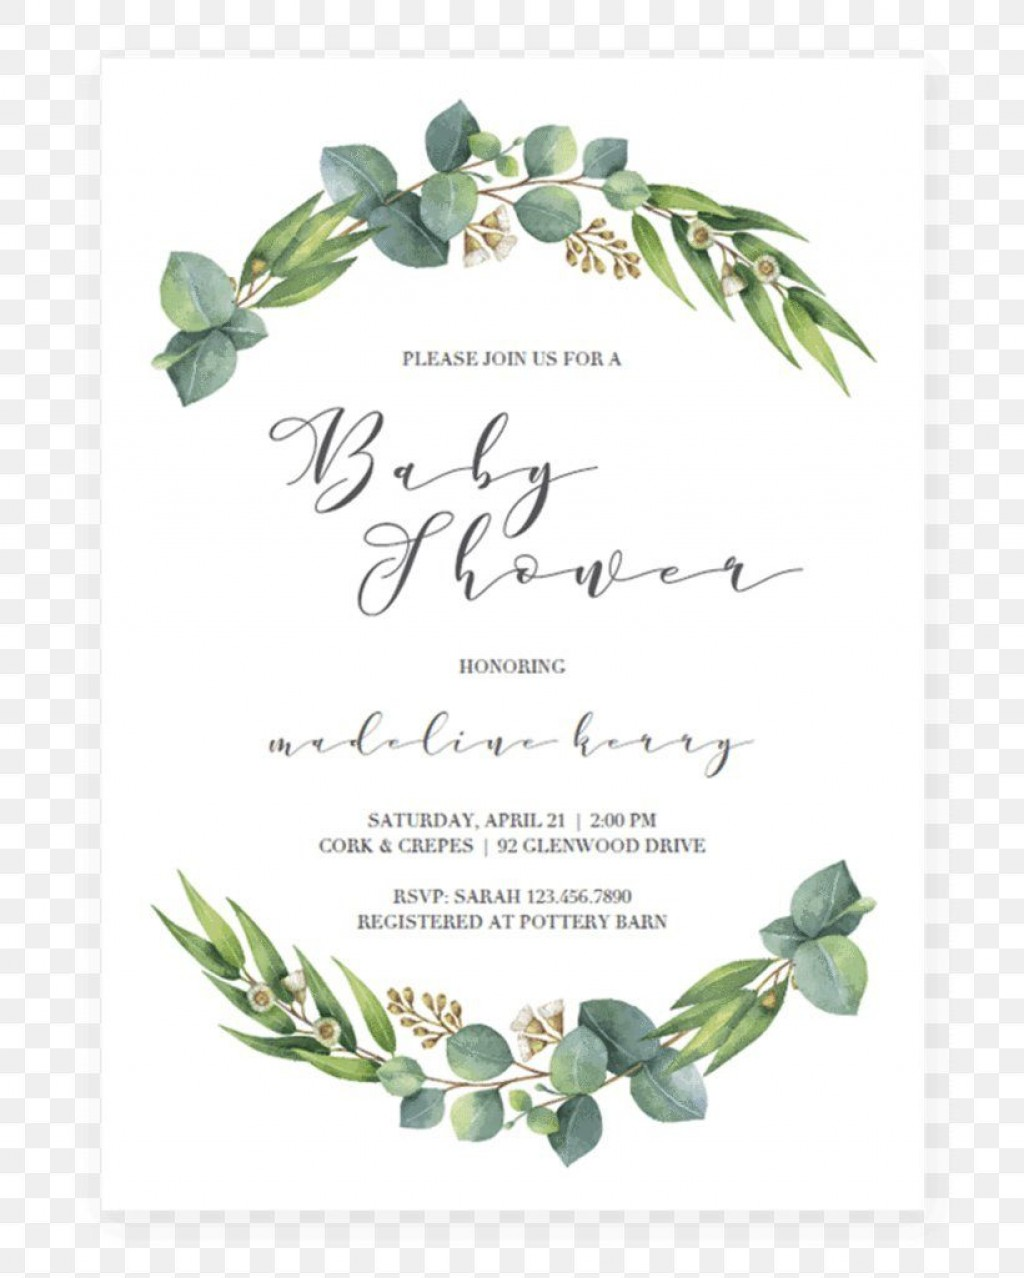 009 Impressive Free Download Wedding Invitation Template For Word Idea  Indian MicrosoftLarge